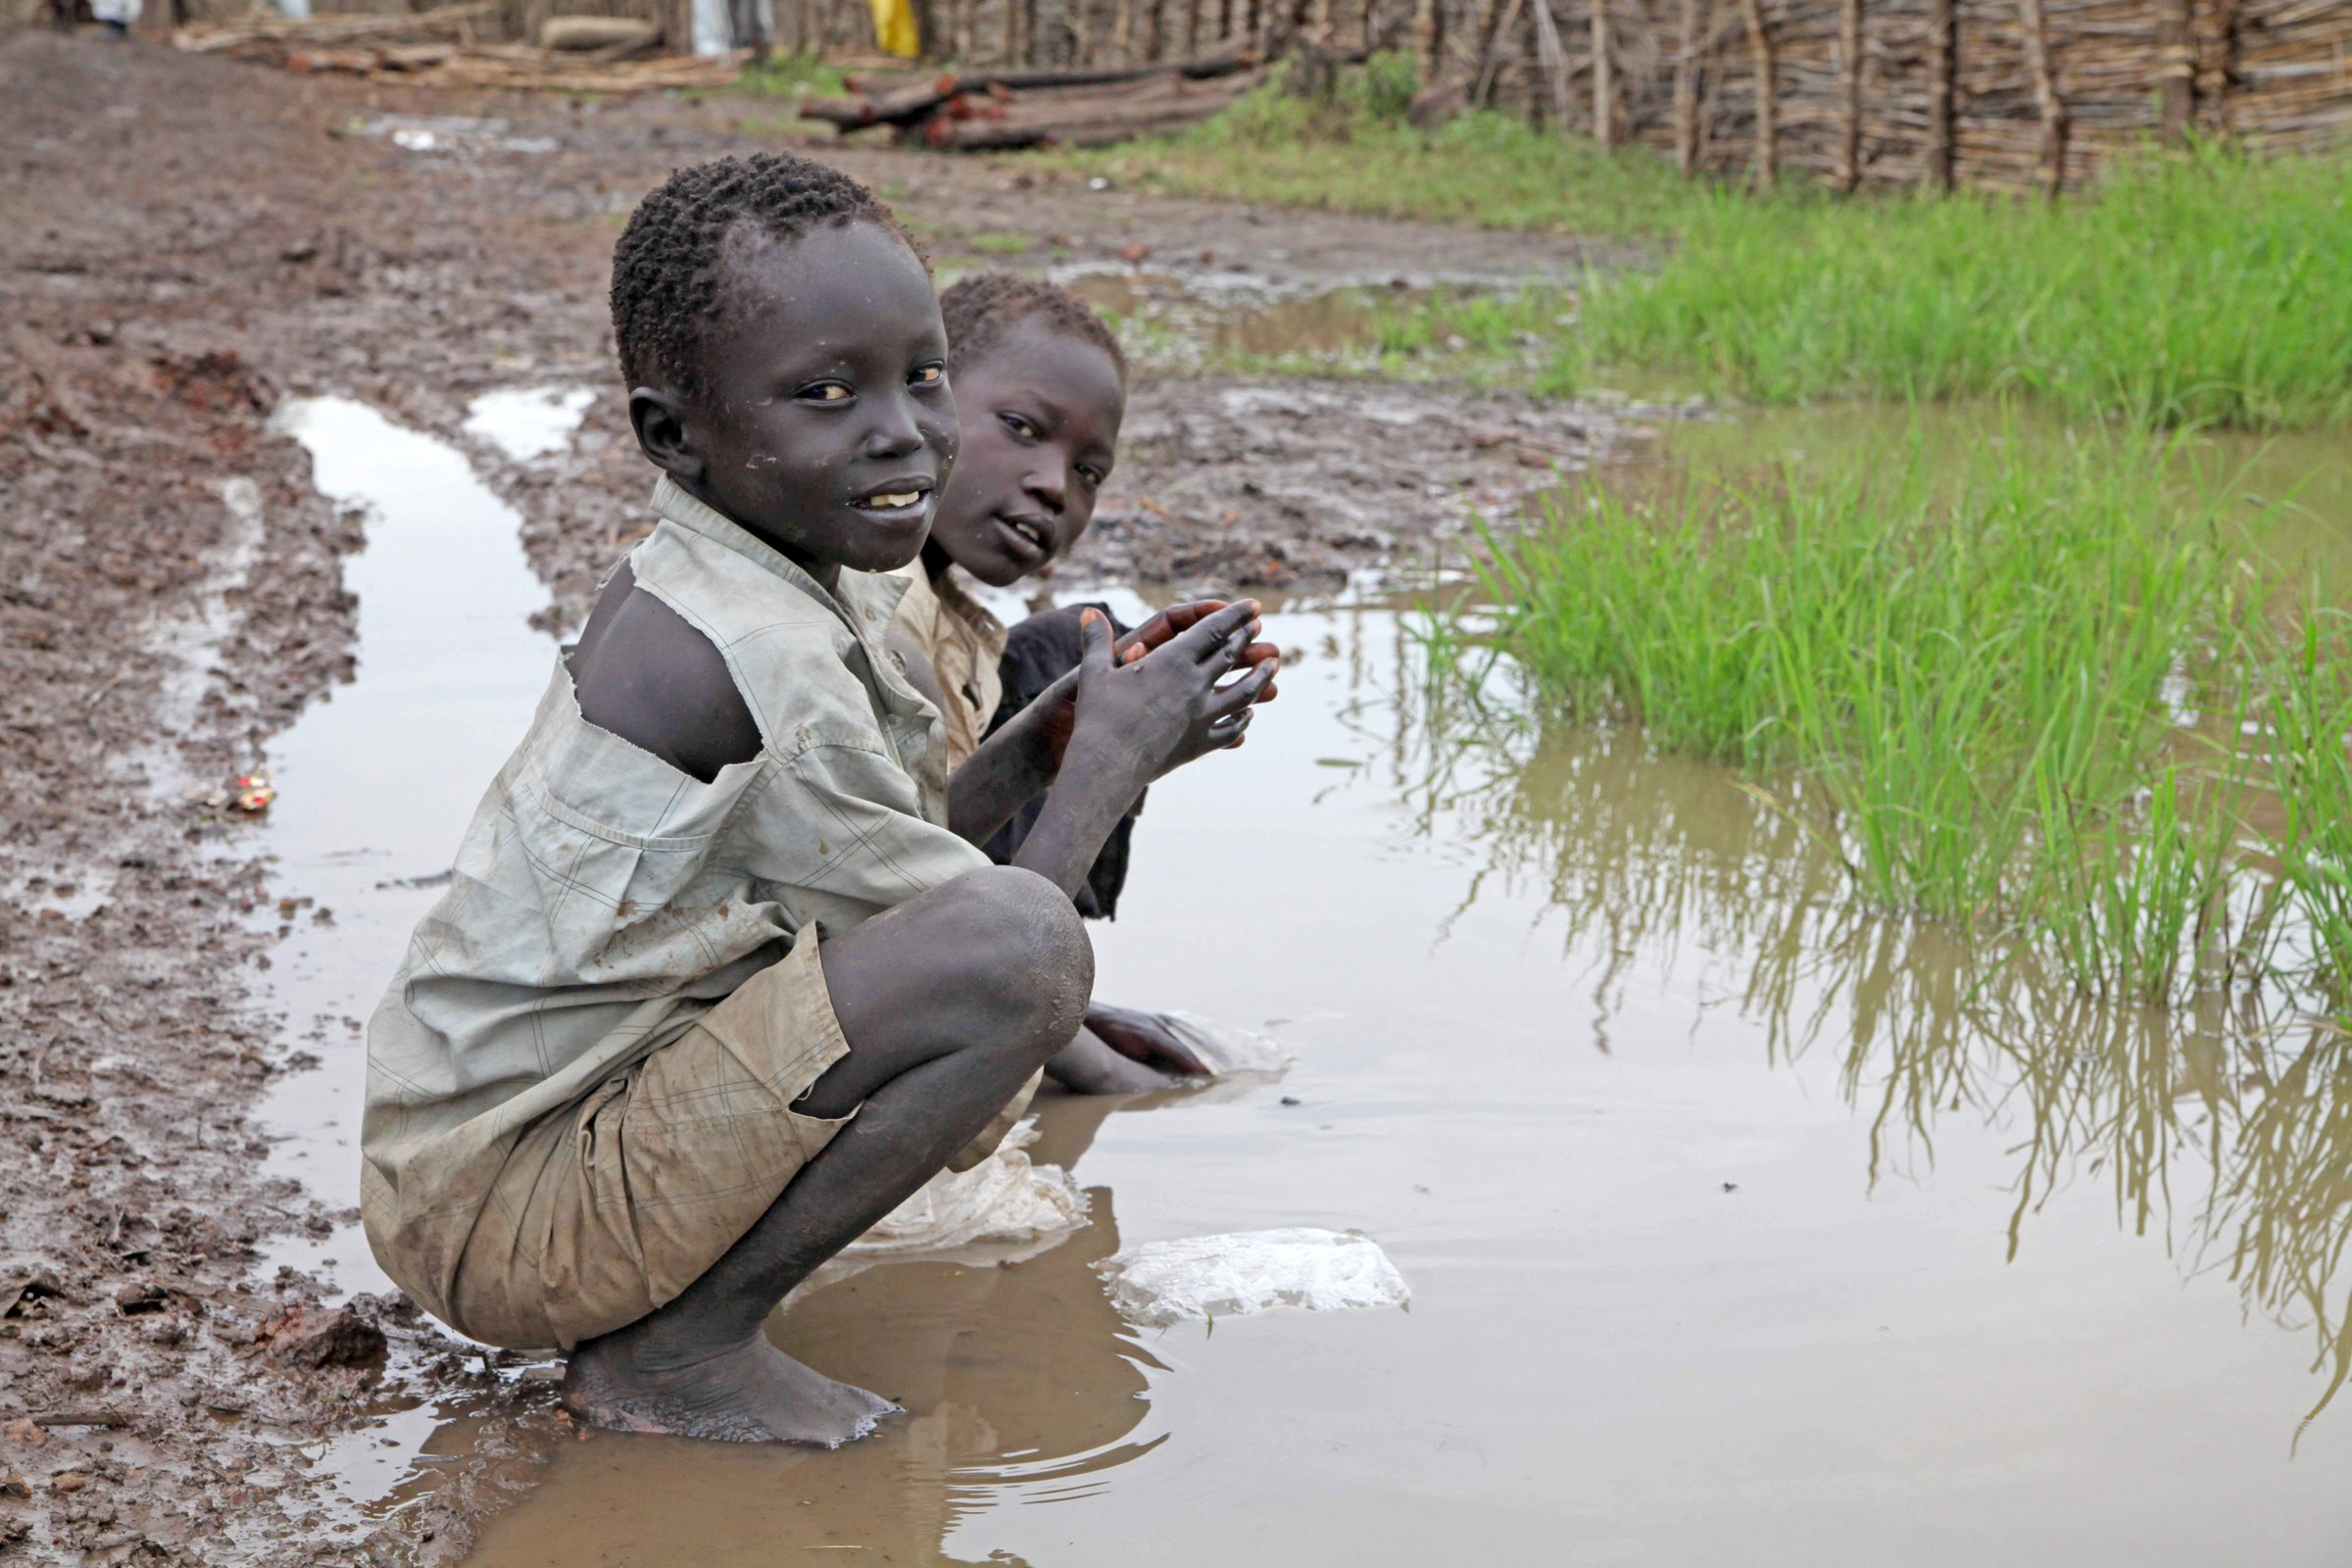 Children at Gendrassa refugee camp in Upper Nile State, South Sudan, play in a dirty puddle. Aid agencies say malnutrition in the camp has declined, but disease is still rife